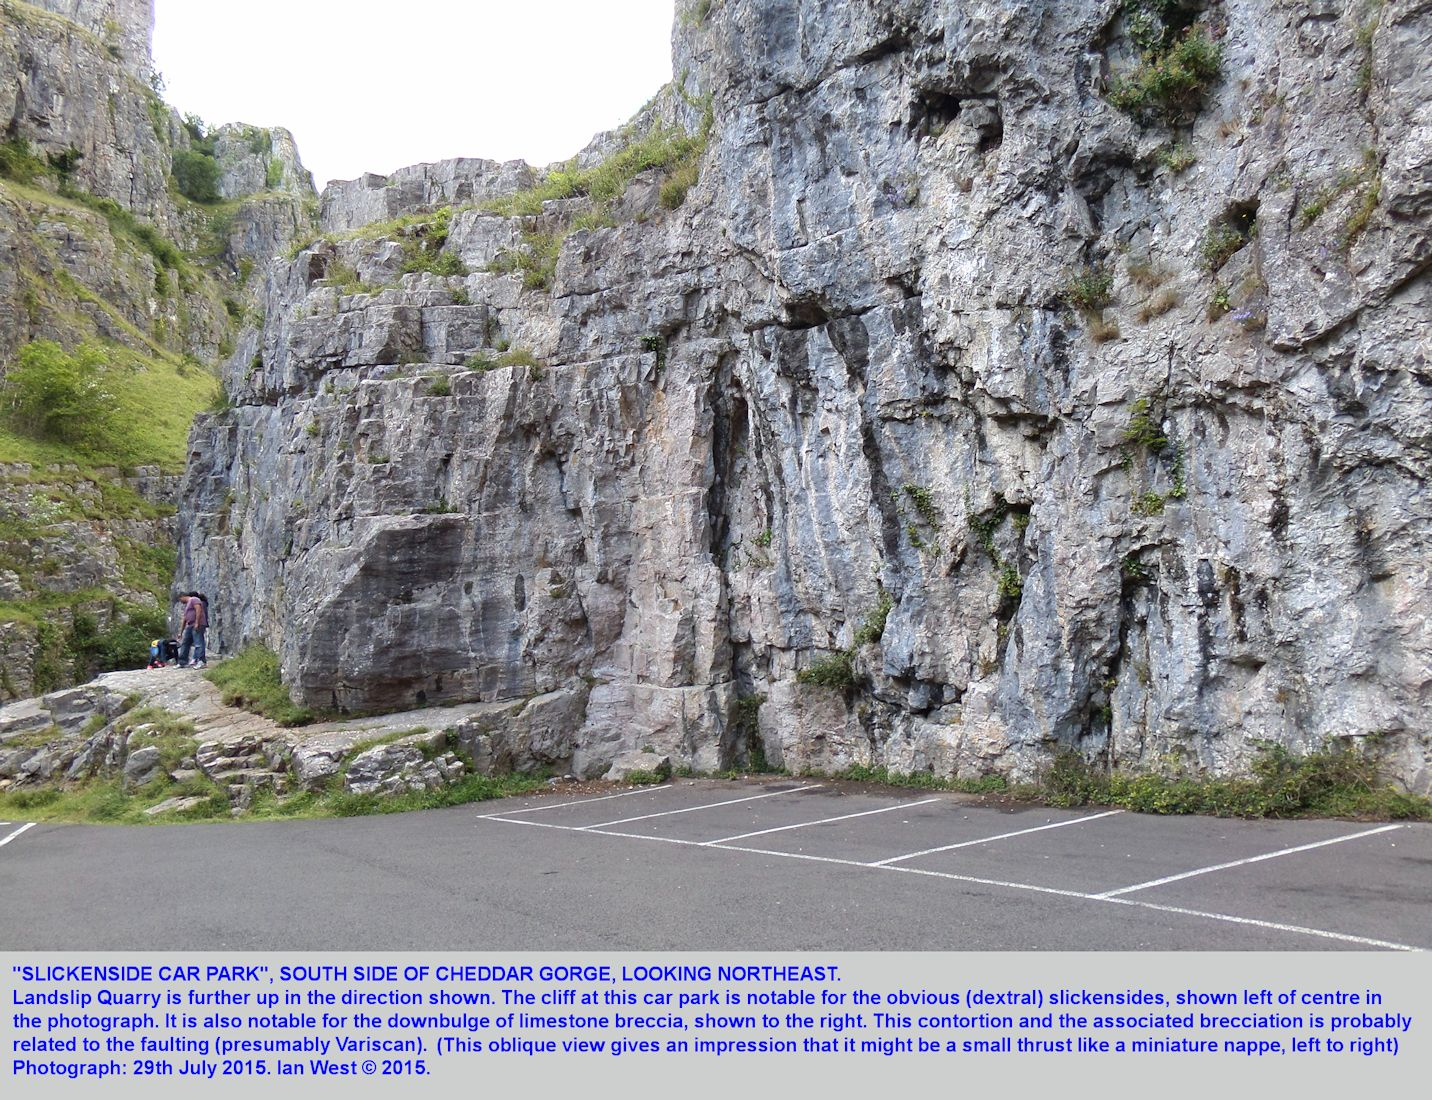 A slickensided fault surface and a tectonic downbulge at a car park in the lower Cheddar Gorge, Mendip Hills, Somerset, 29th July 2015